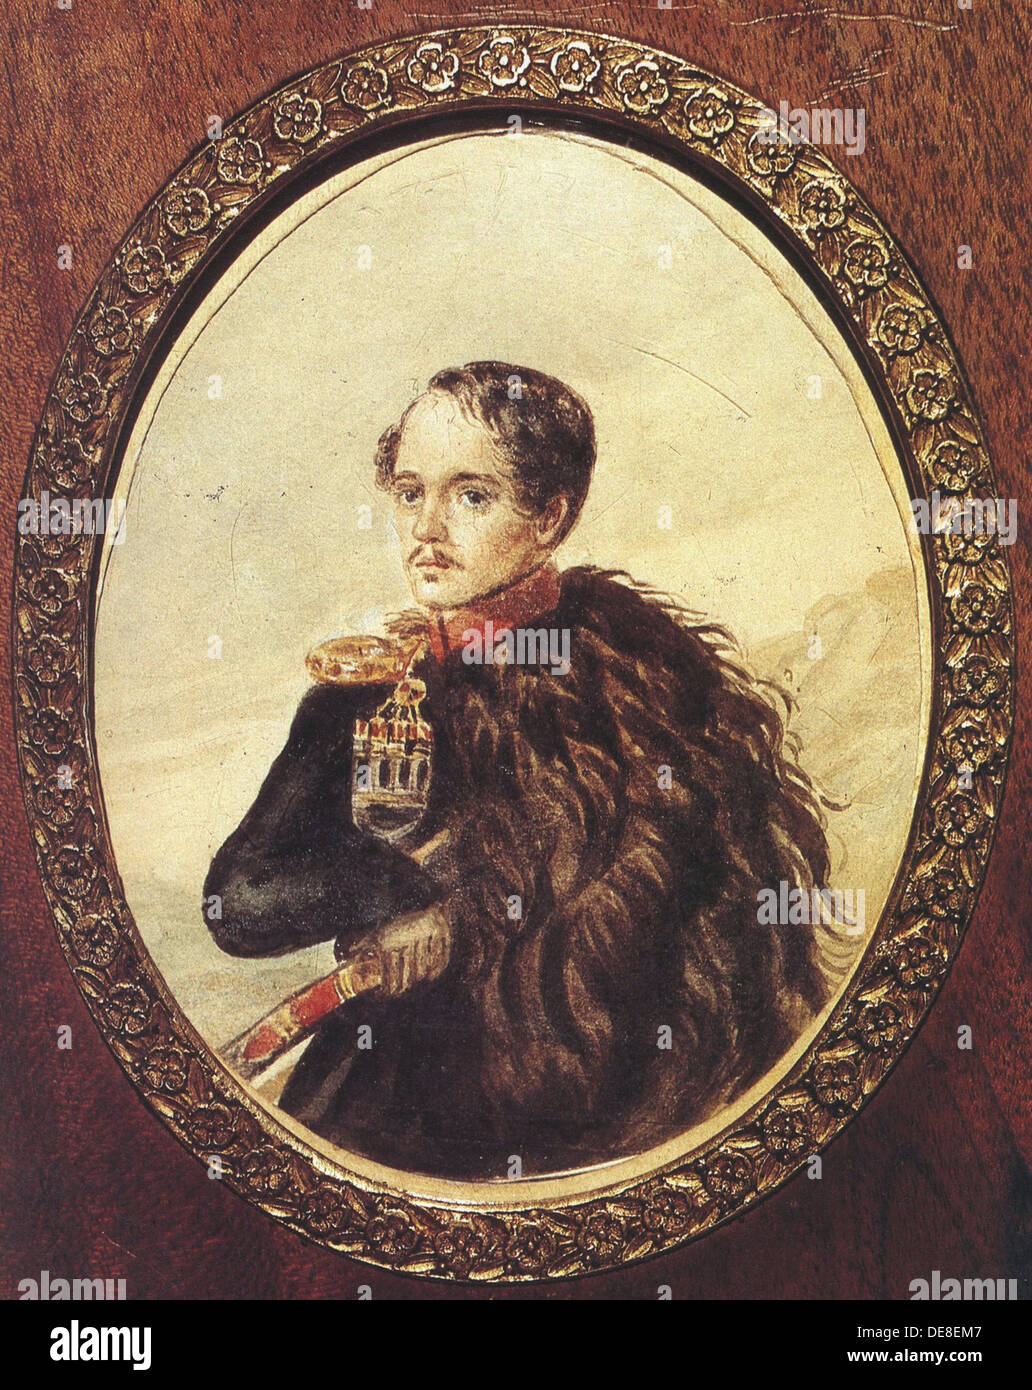 Biography of Mikhail Yuryevich Lermontov. The life and work of Lermontov 43